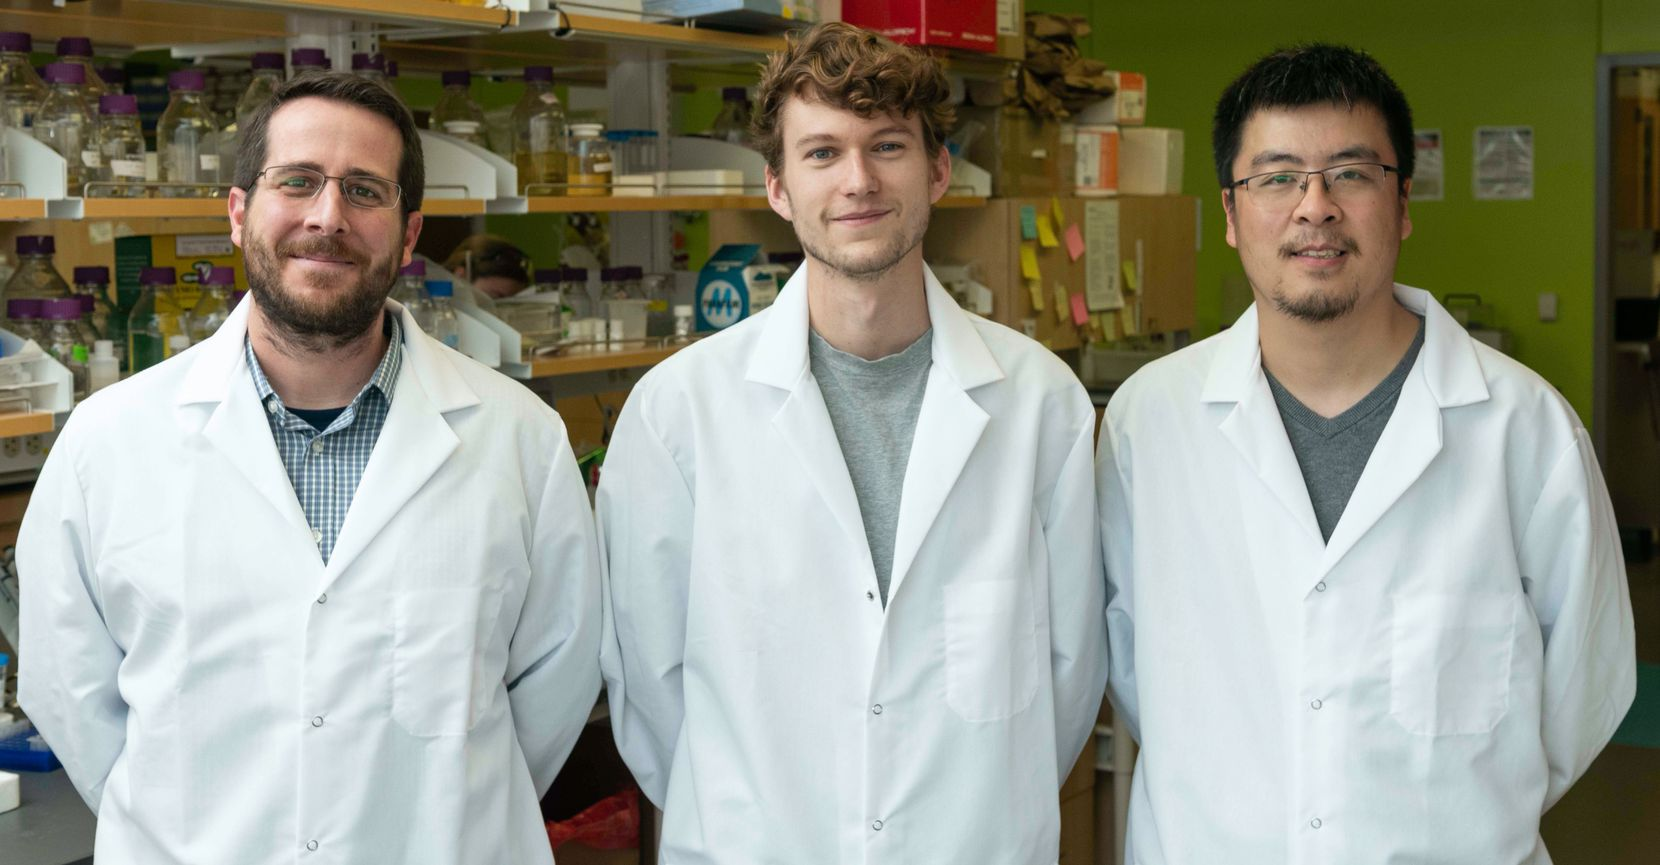 Key discoveries from a team of researchers at UT has led to the fastest vaccine development in history.